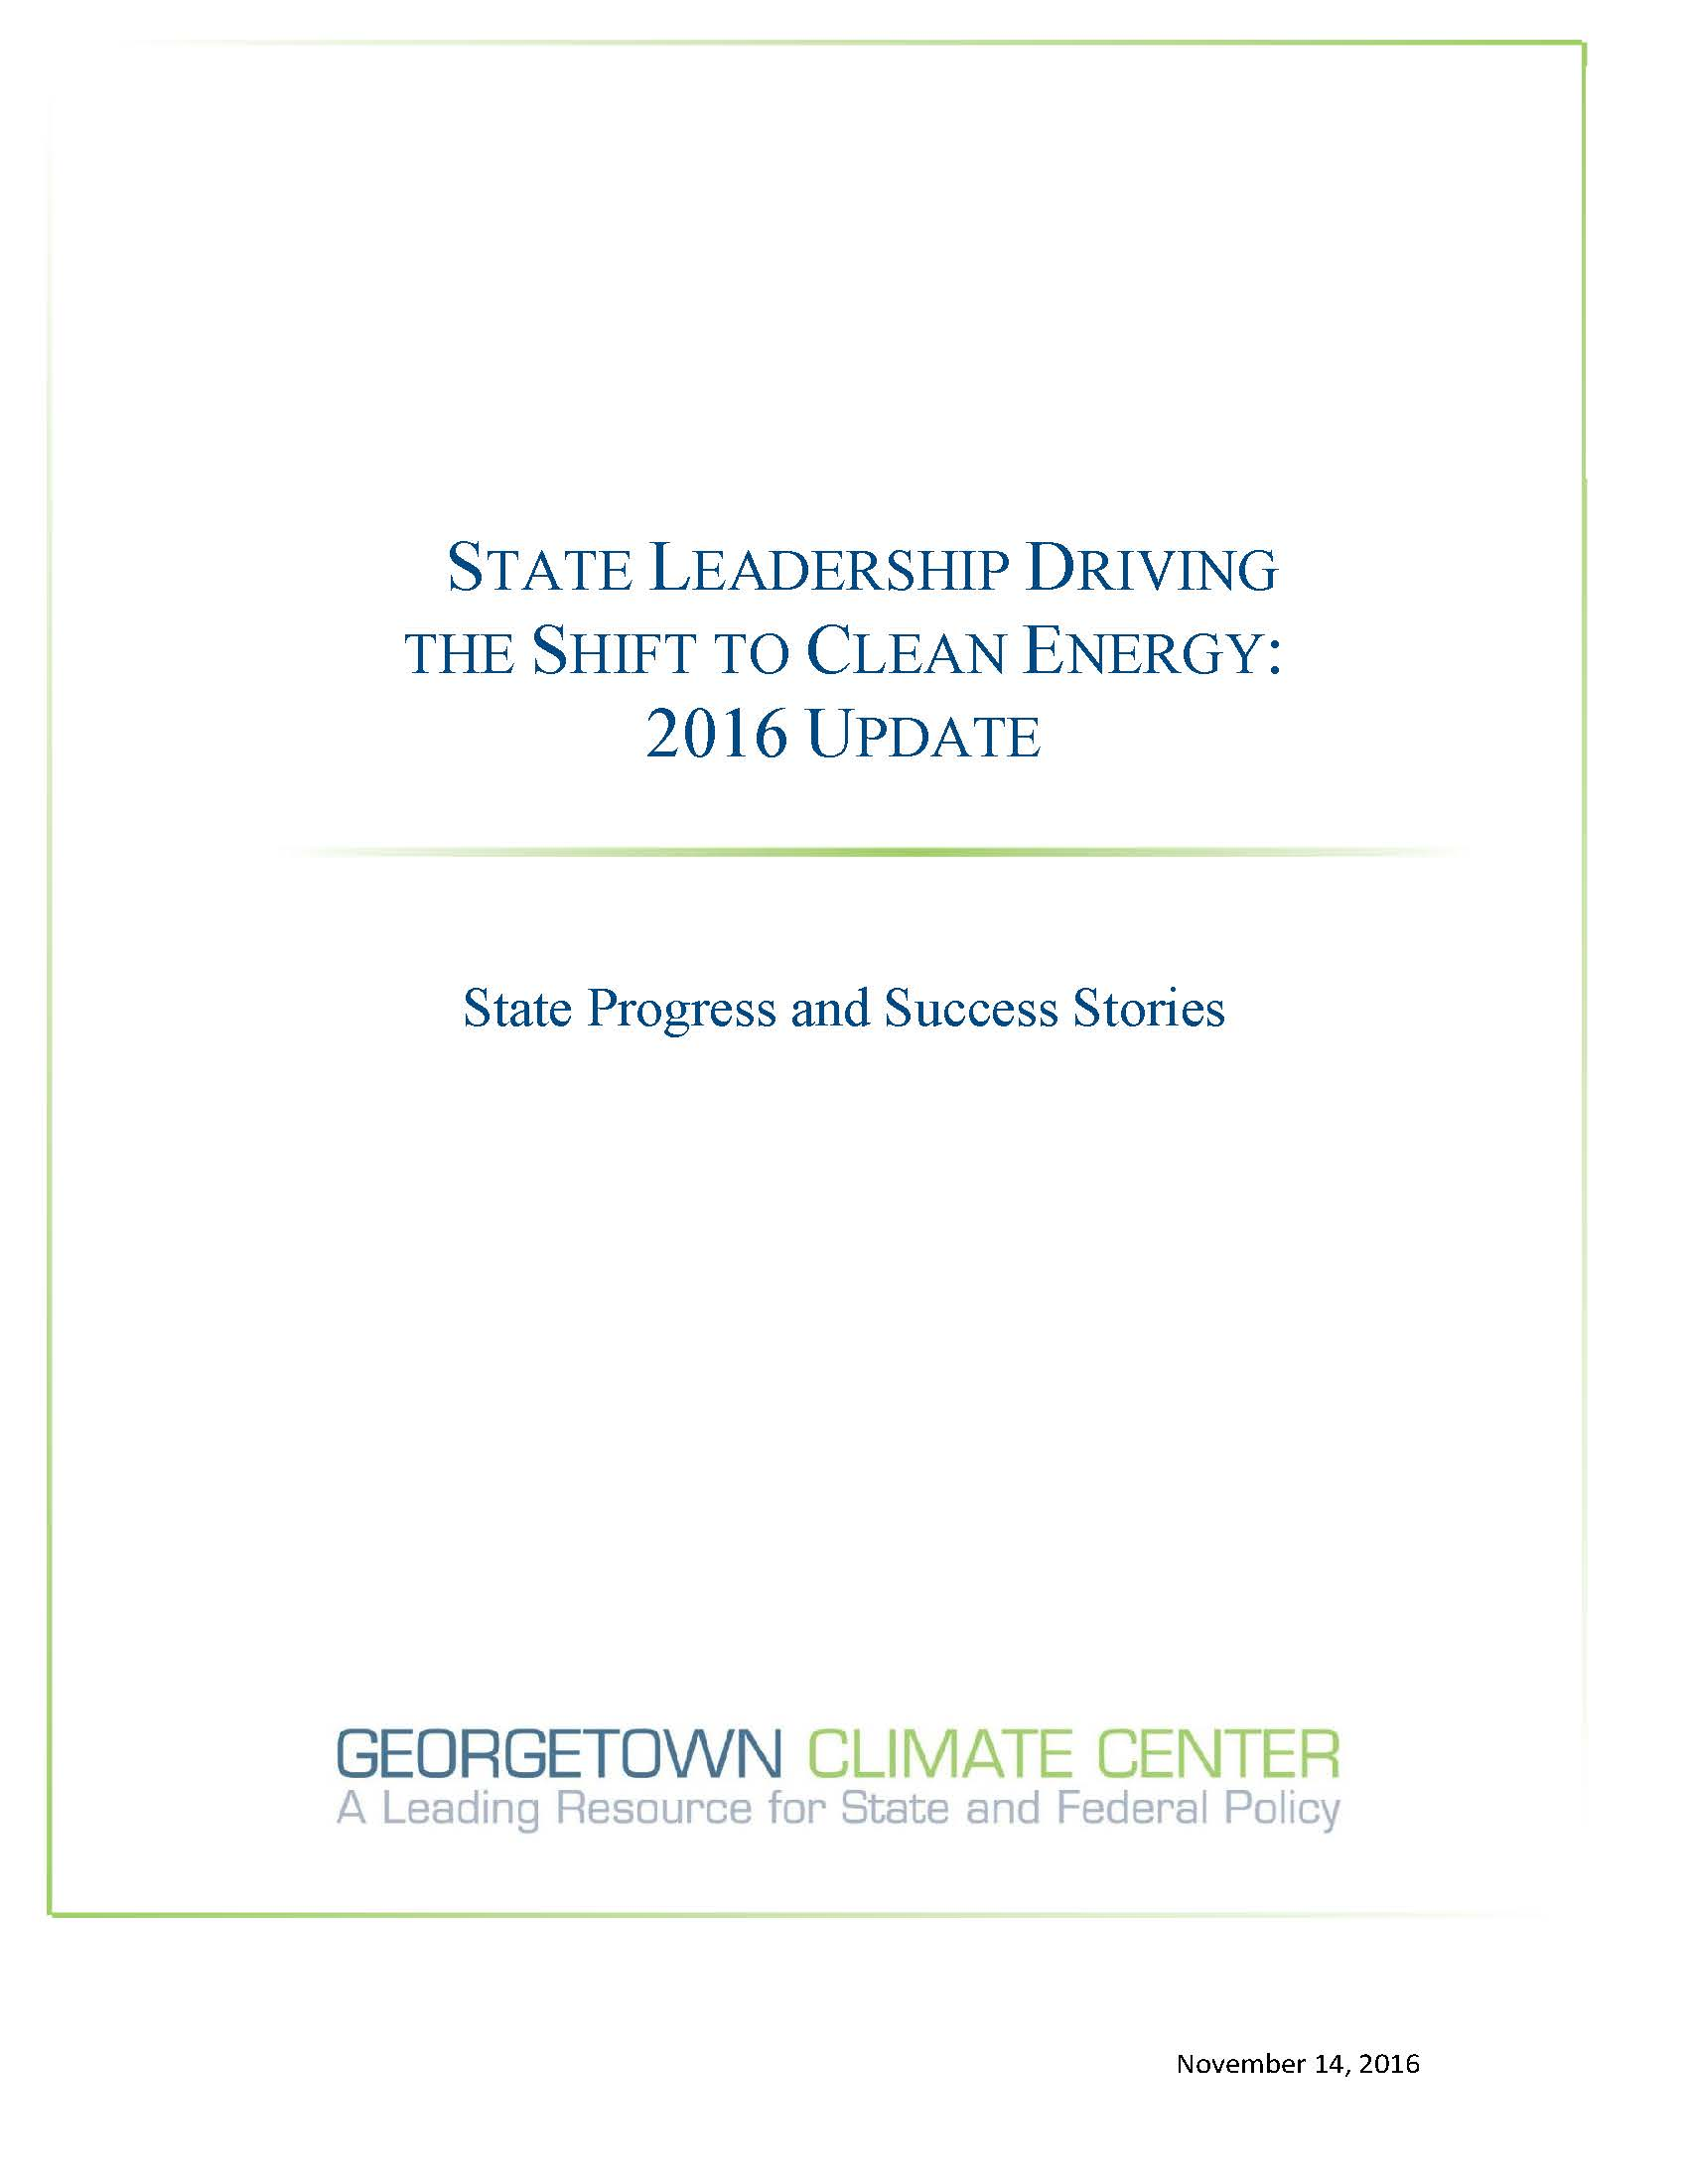 State Leadership Driving the Shift to Clean Energy: 2016 Update